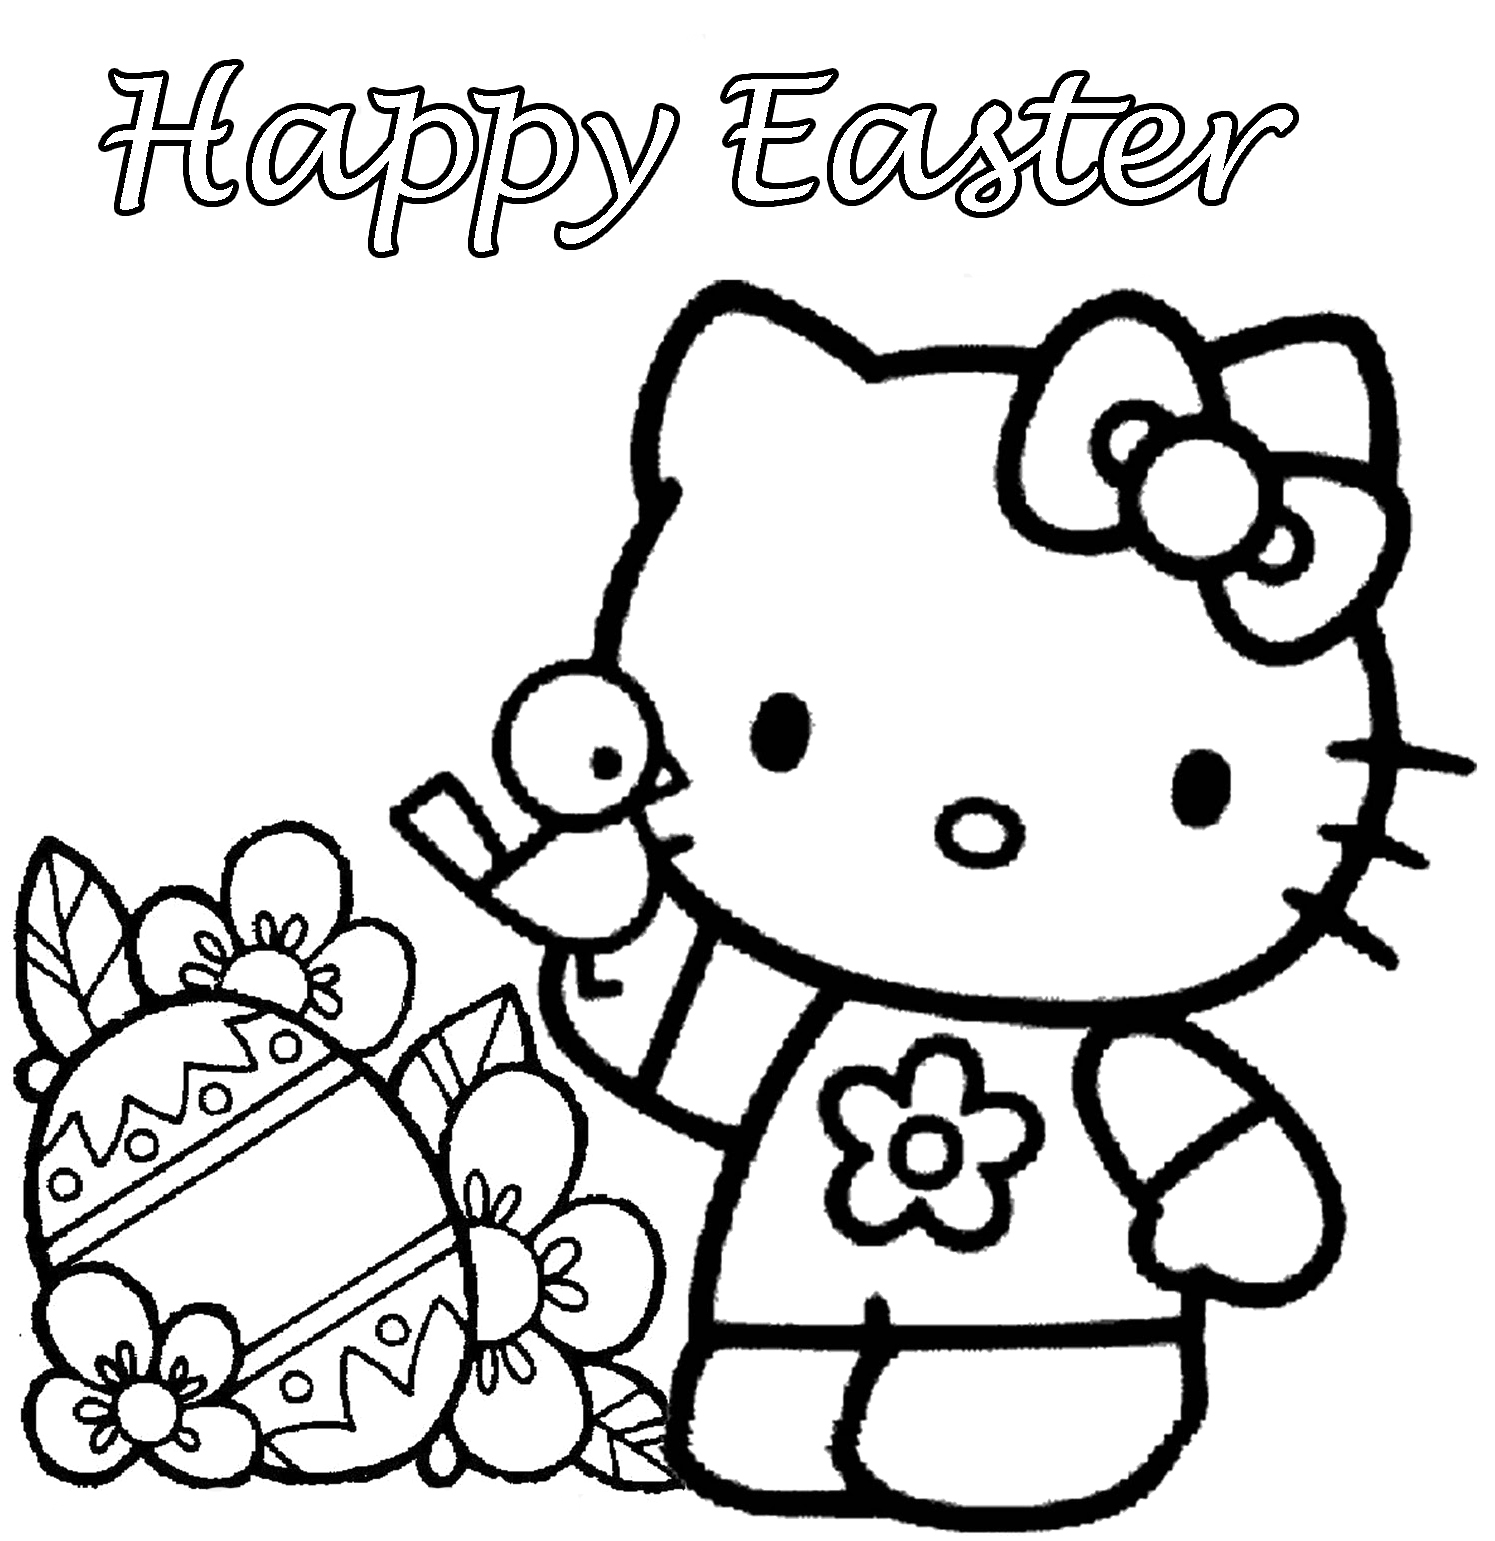 Free Easter Coloring Pages At Getdrawings